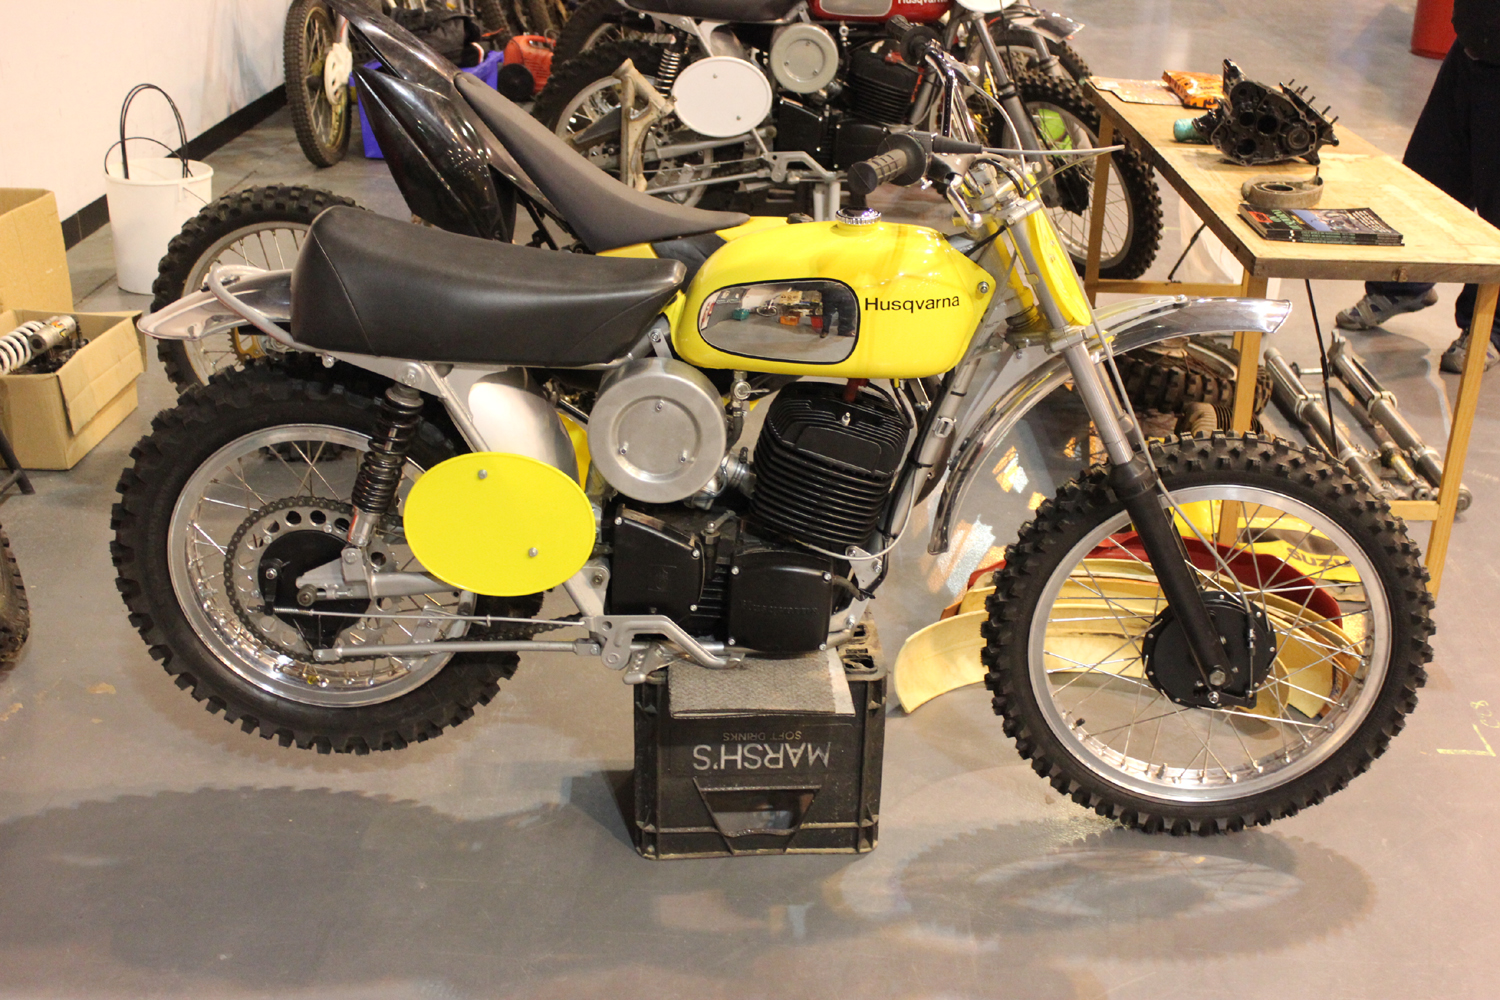 classicdirtbikerider.com-photo by Mr J-2015 Telford classic dirt bike show-EARLY HUSQVARNA MX BIKE